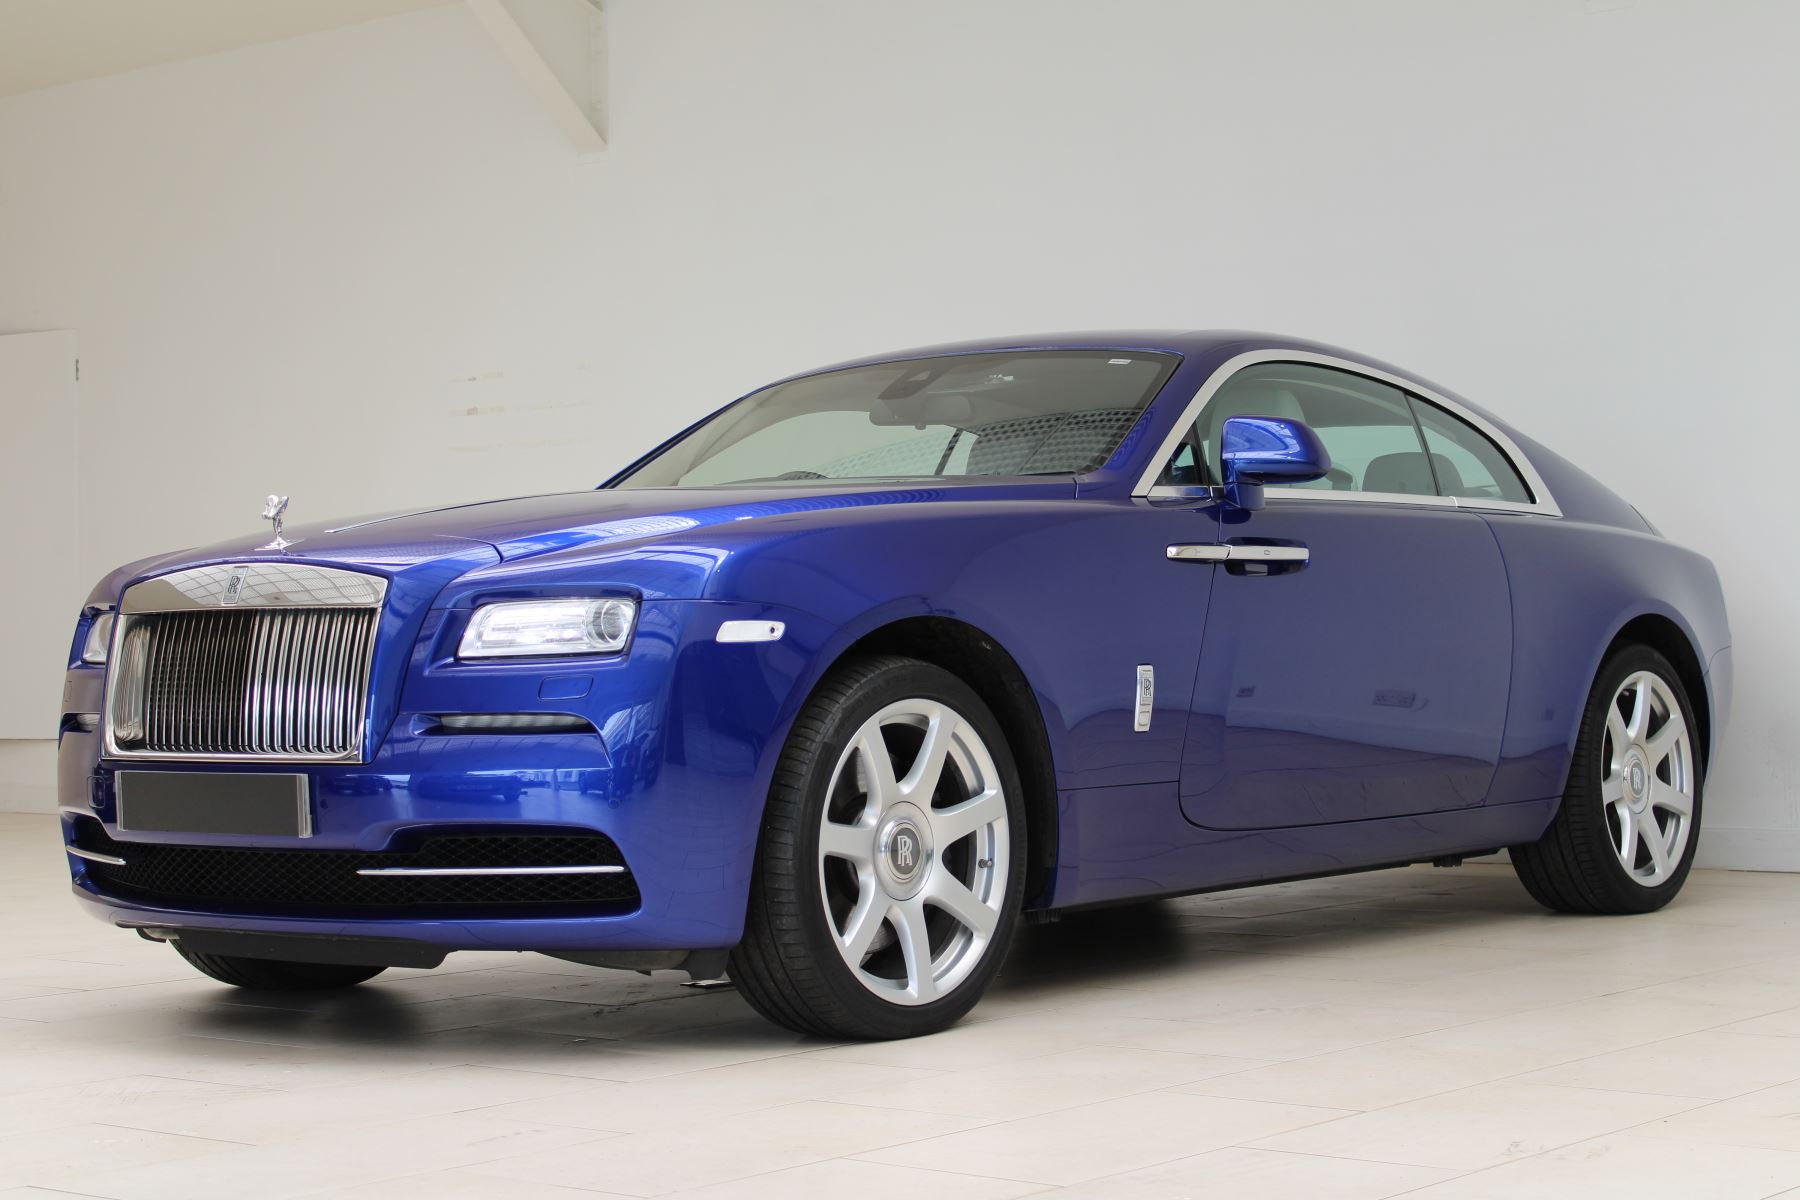 Used - Rolls-Royce Wraith Cars for Sale | Motorparks